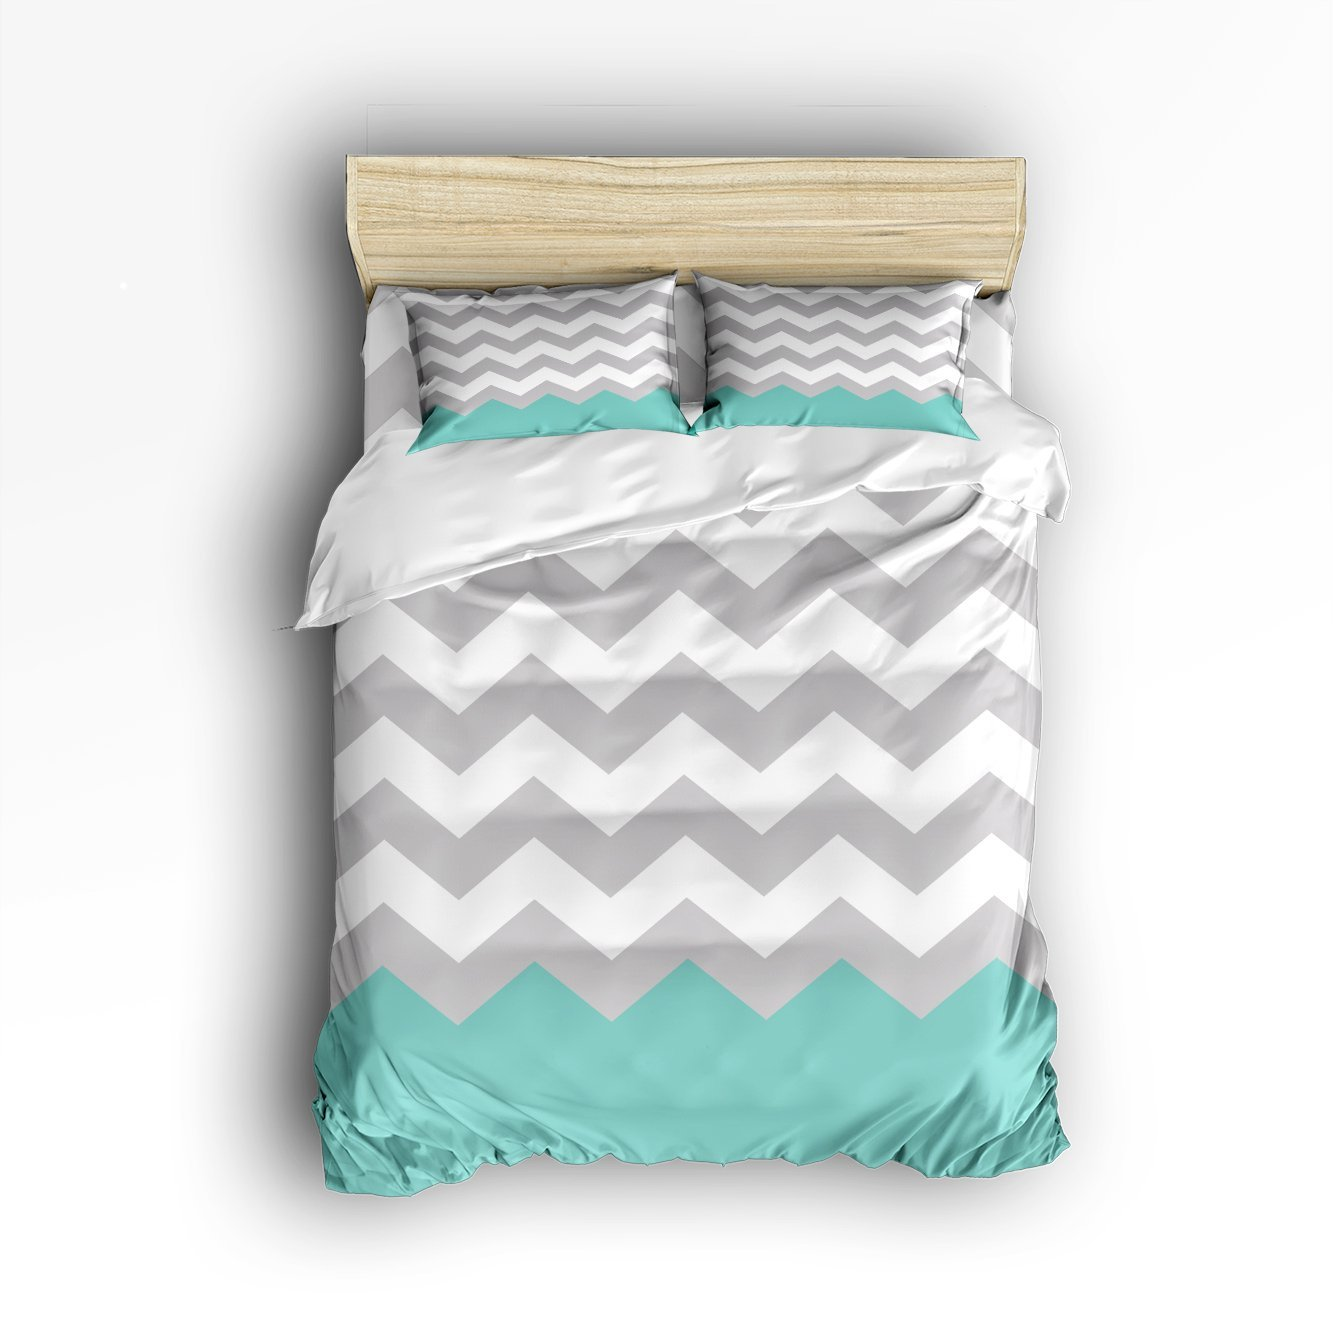 4 Piece Bed Sheets Set, <font><b>White</b></font> Green Grey Zig Zag <font><b>Chevron</b></font> Pattern, 1 Flat Sheet 1 Duvet Cover <font><b>and</b></font> 2 Pillow Cases